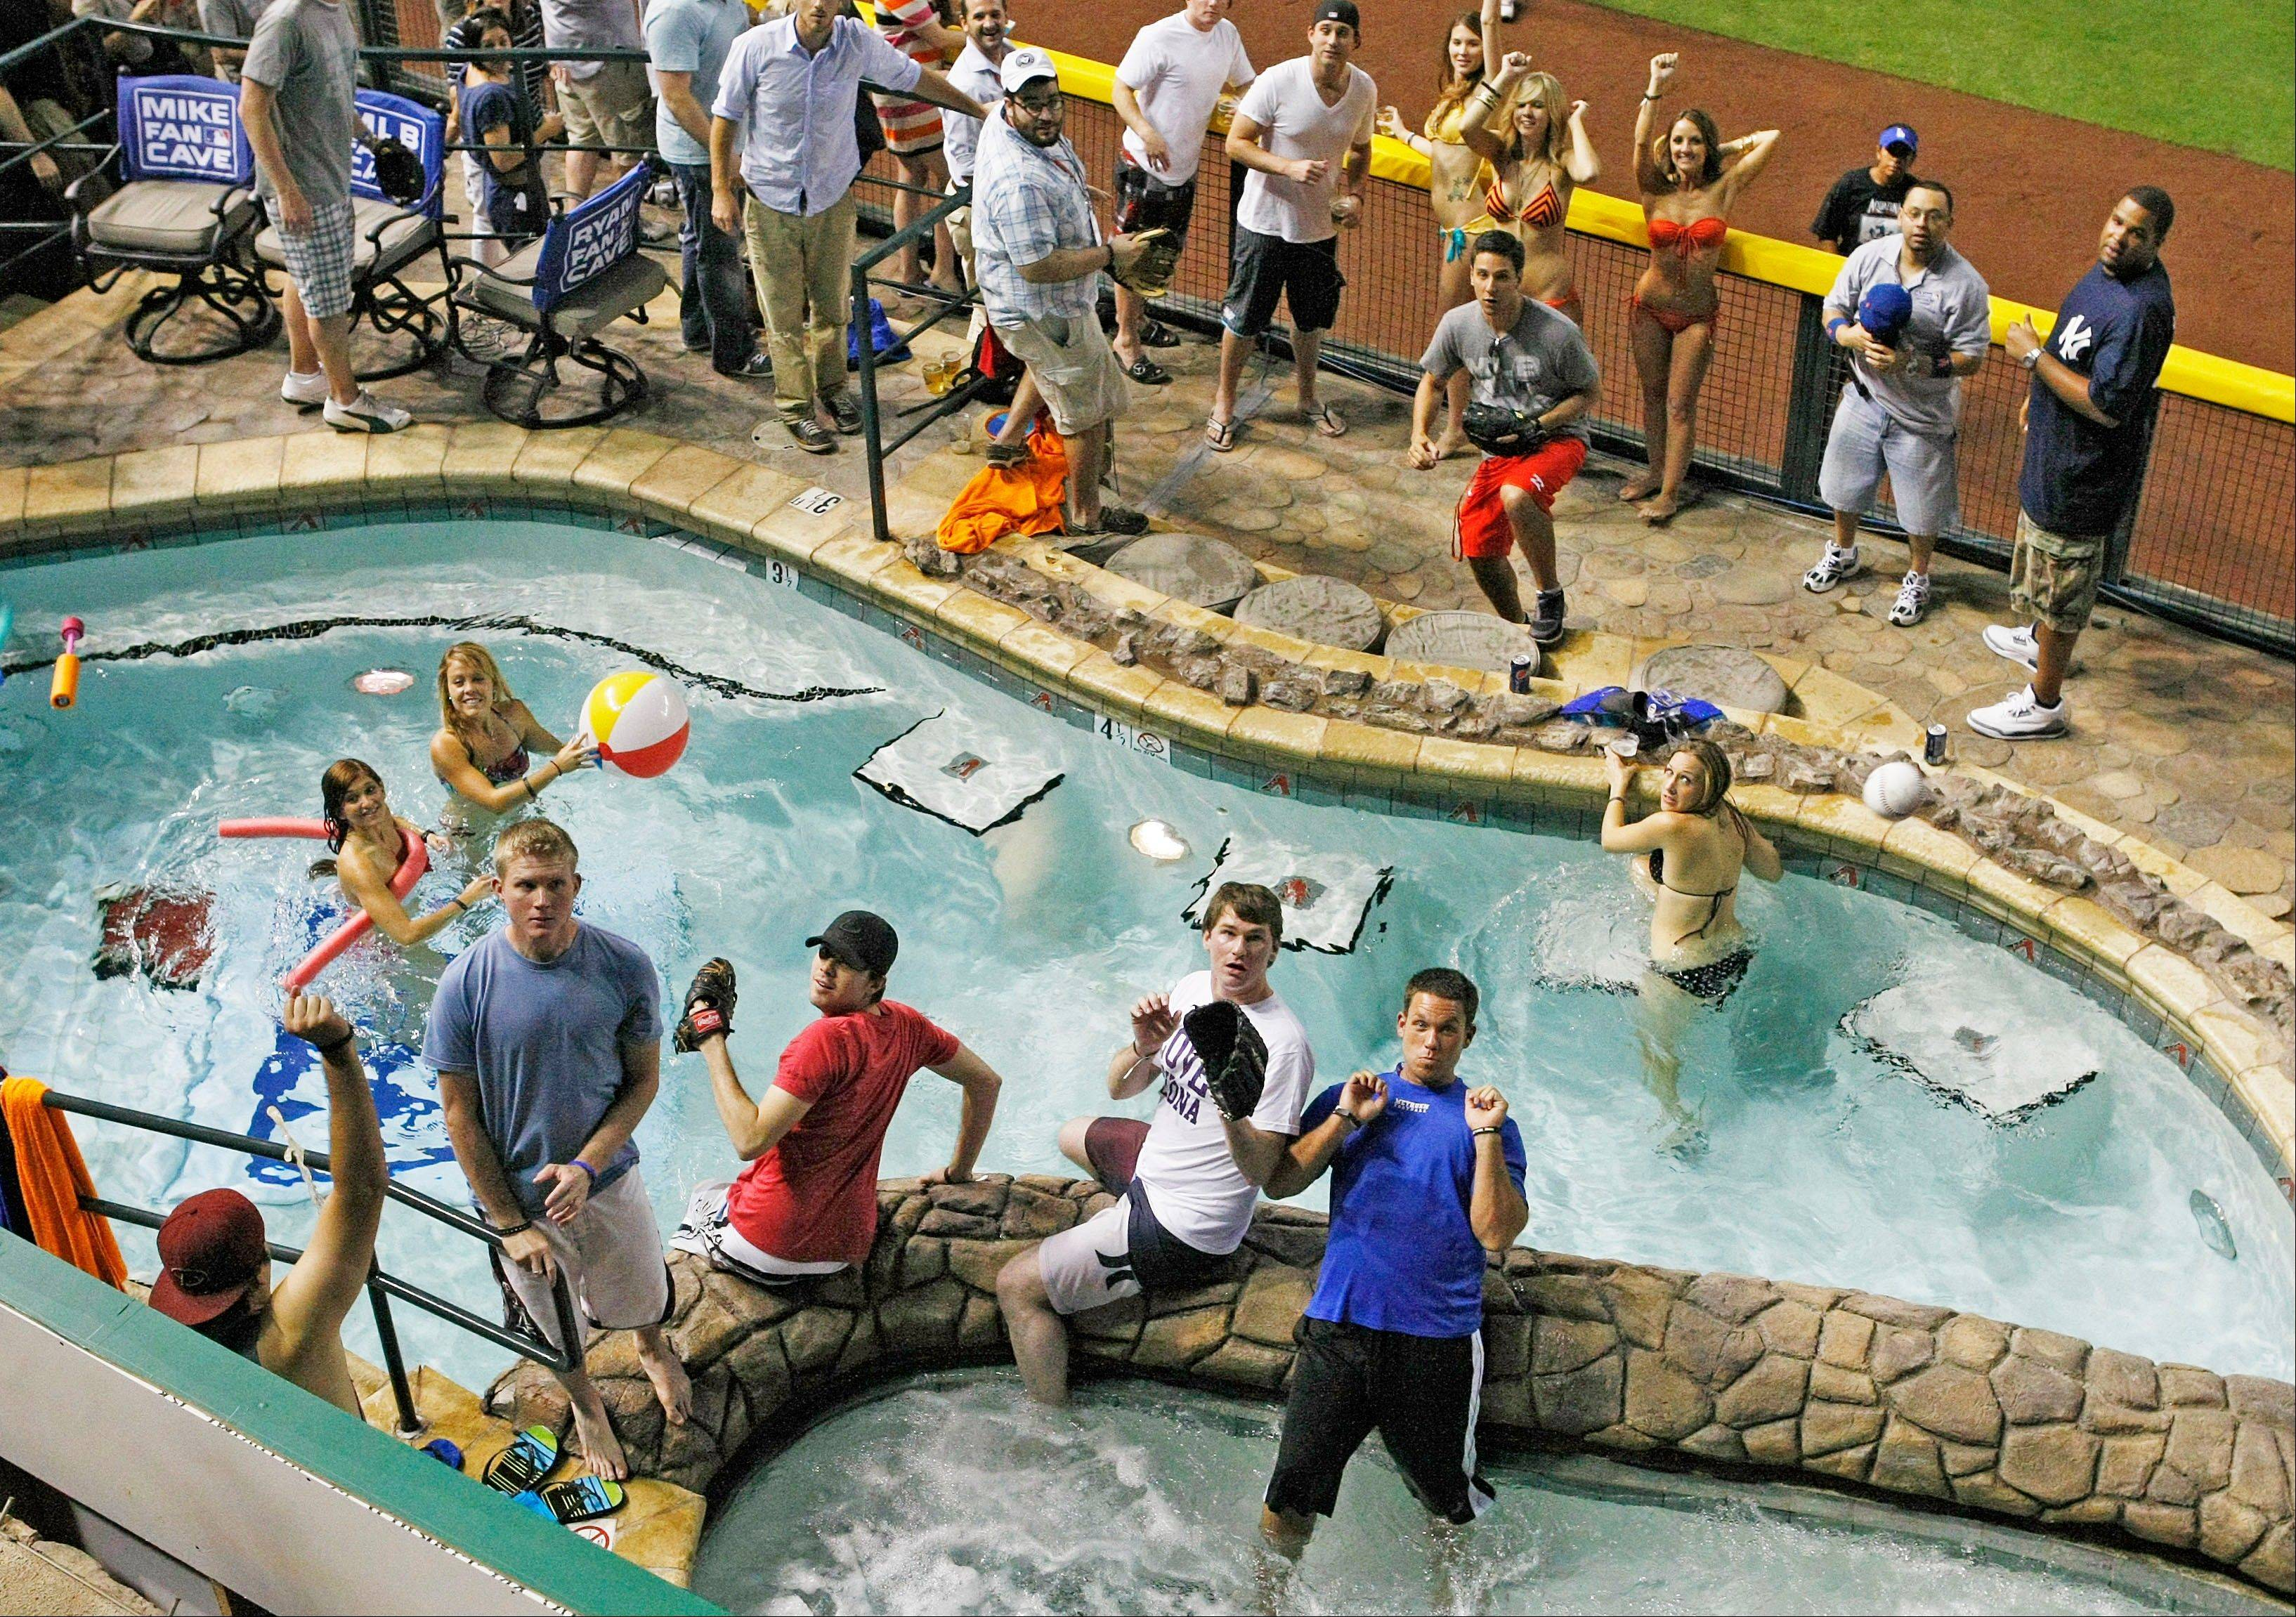 A home-run ball falls into the pool during the All-Star Home Run Derby at Chase Field in Phoenix.